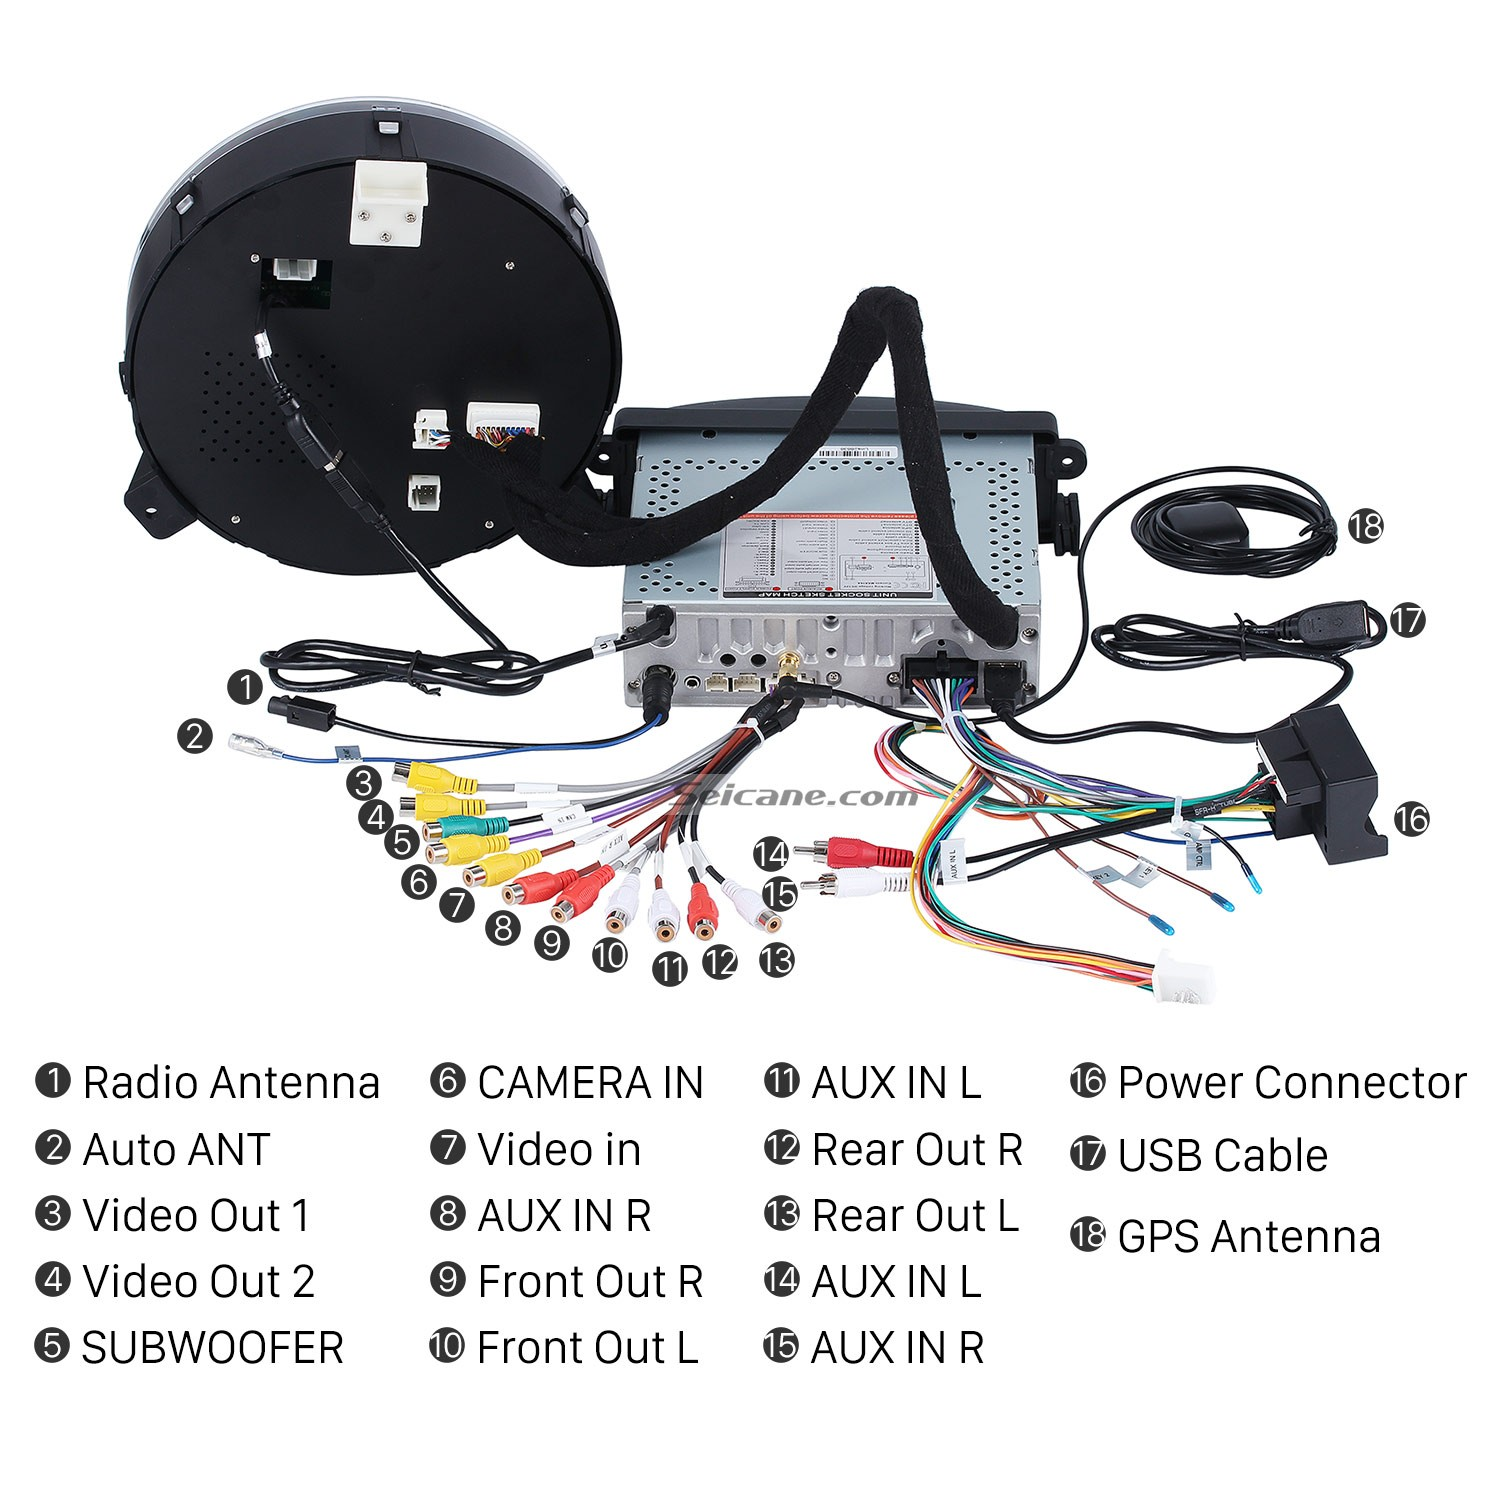 16. Connect the harnesses to the back of the new Seicane stereo 2006 2013 BMW Mini Cooper GPS Bluetooth Car Stereo 2006 2013 bmw mini cooper gps bluetooth car stereo removal and Mini Cooper Transmission Wiring Harness at aneh.co